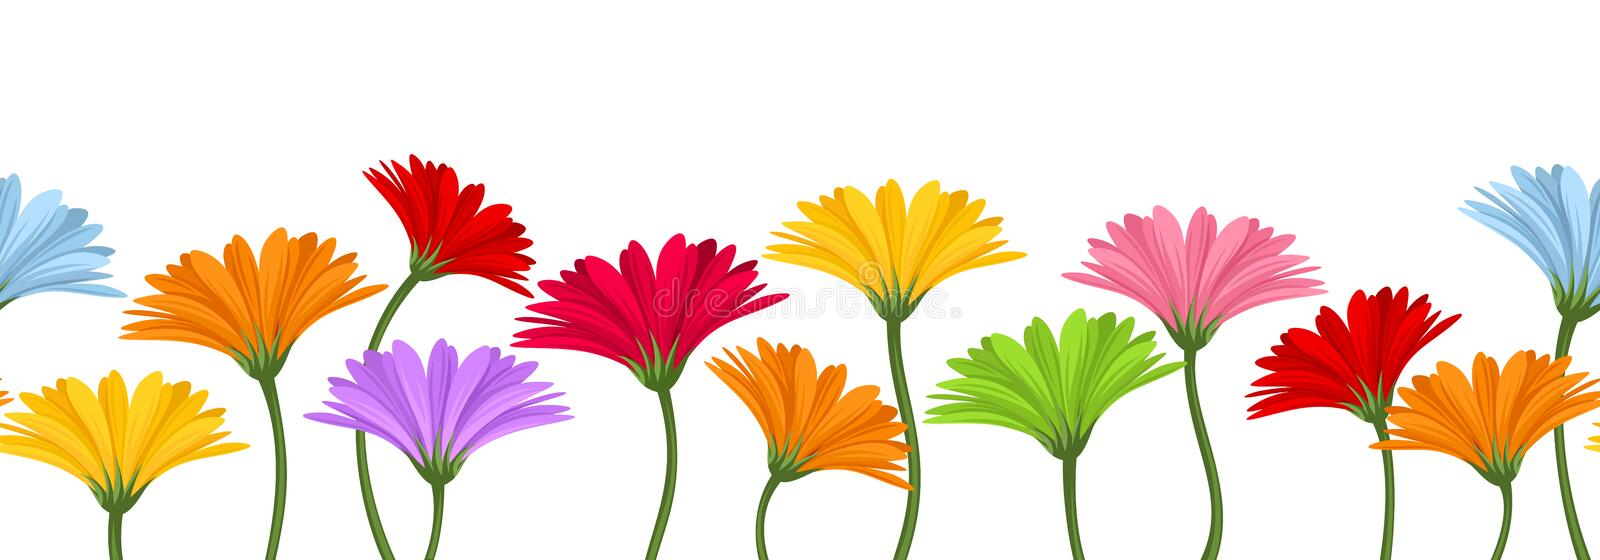 Horizontal seamless background with colorful gerbera flowers. Vector illustration. stock illustration